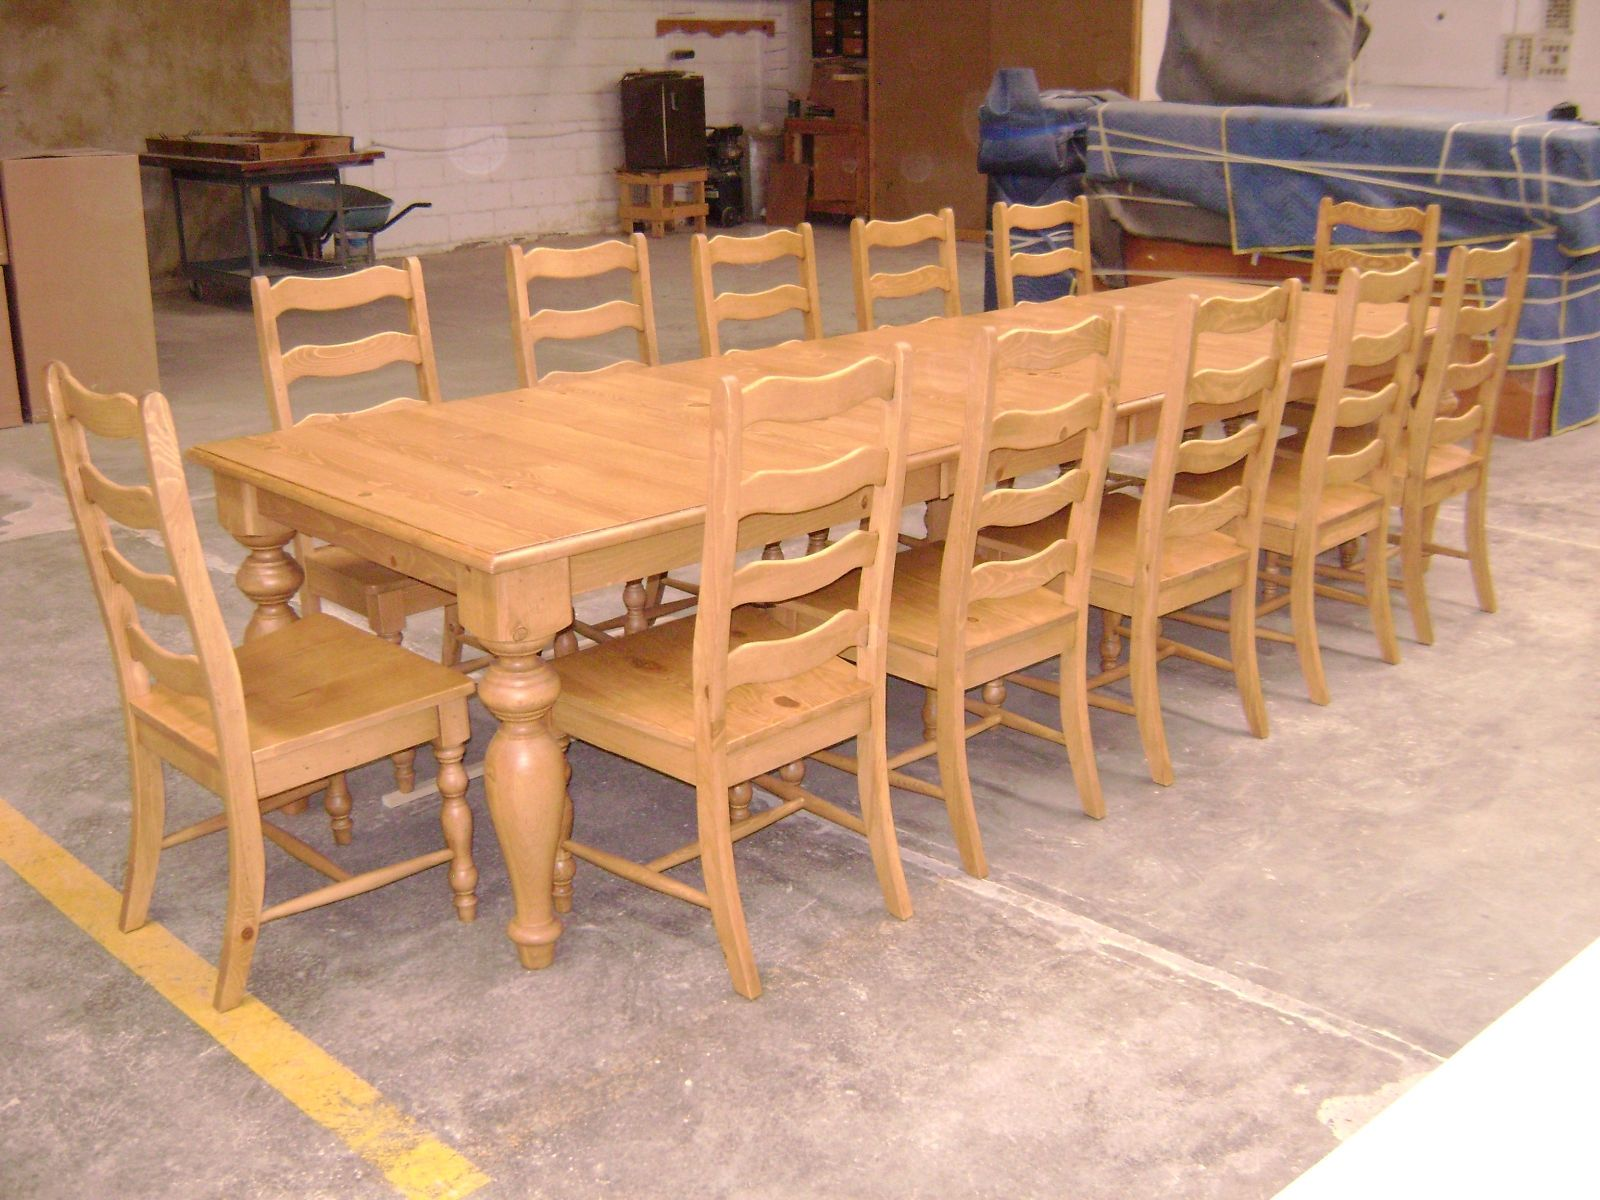 Hand Made Pine Dining Table And Ladder Back Chairs by  : 426024247 from www.custommade.com size 1600 x 1200 jpeg 251kB